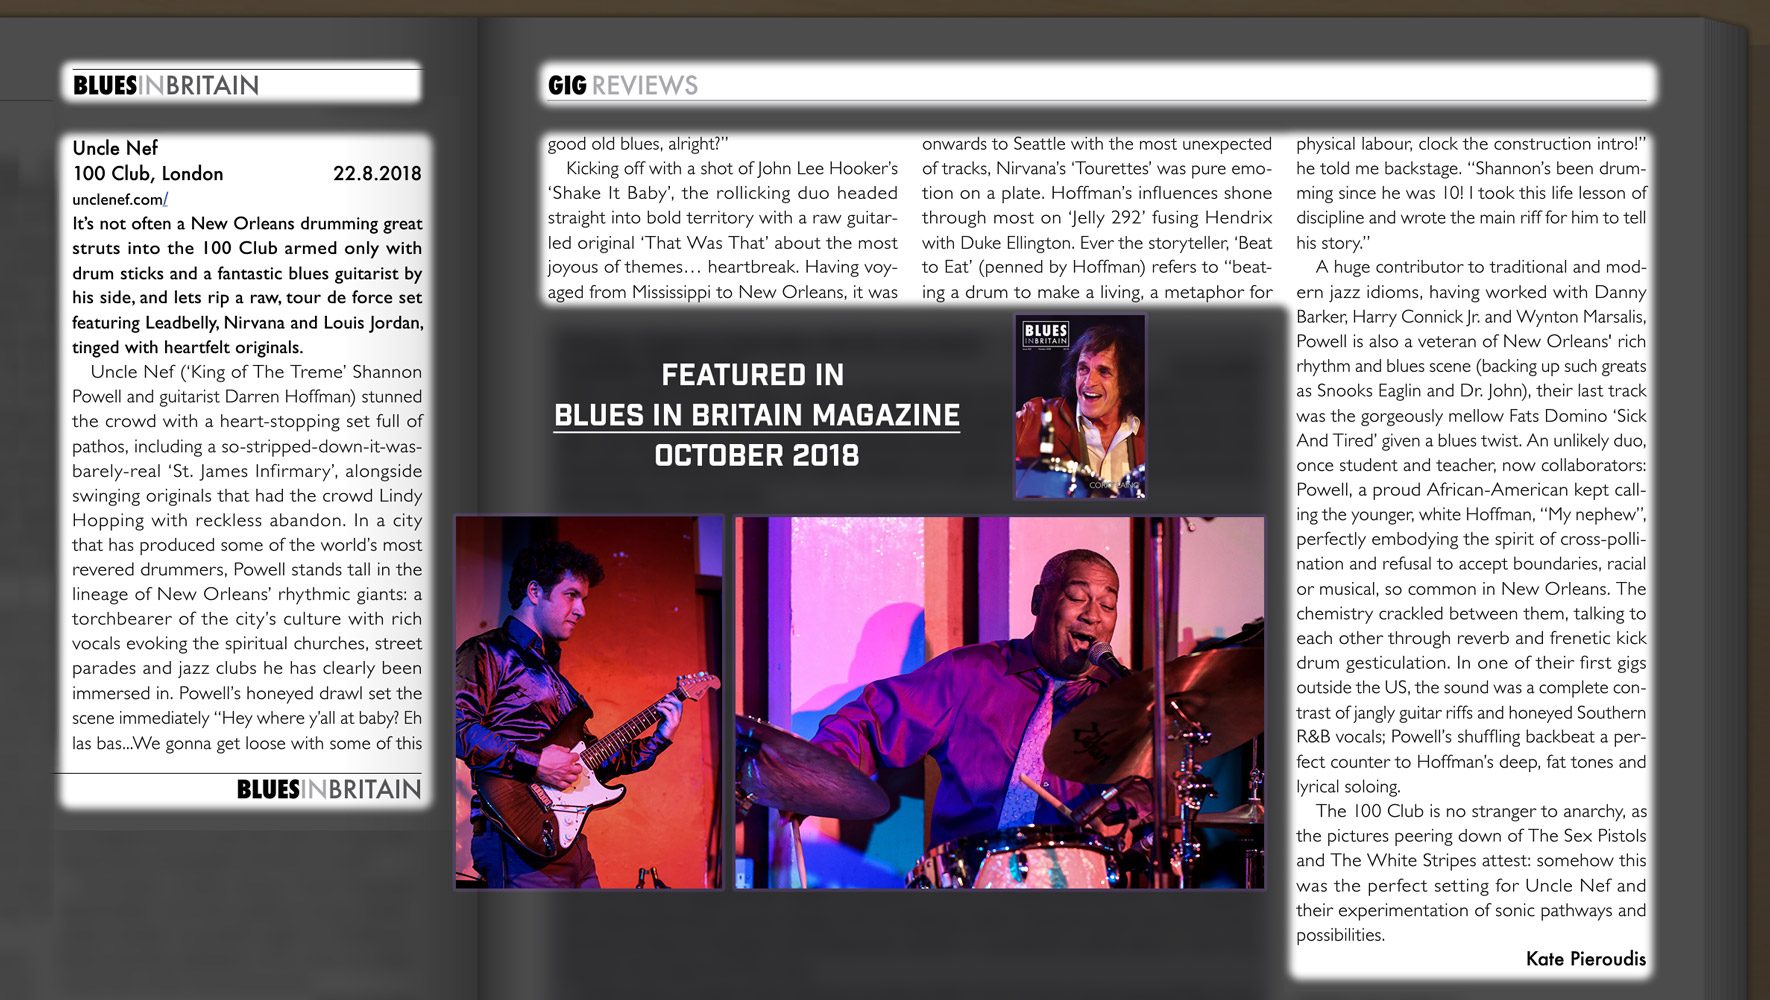 Uncle Nef - Blues in Britain 2018 10 01 - Gig Review 16x9 for web.jpg